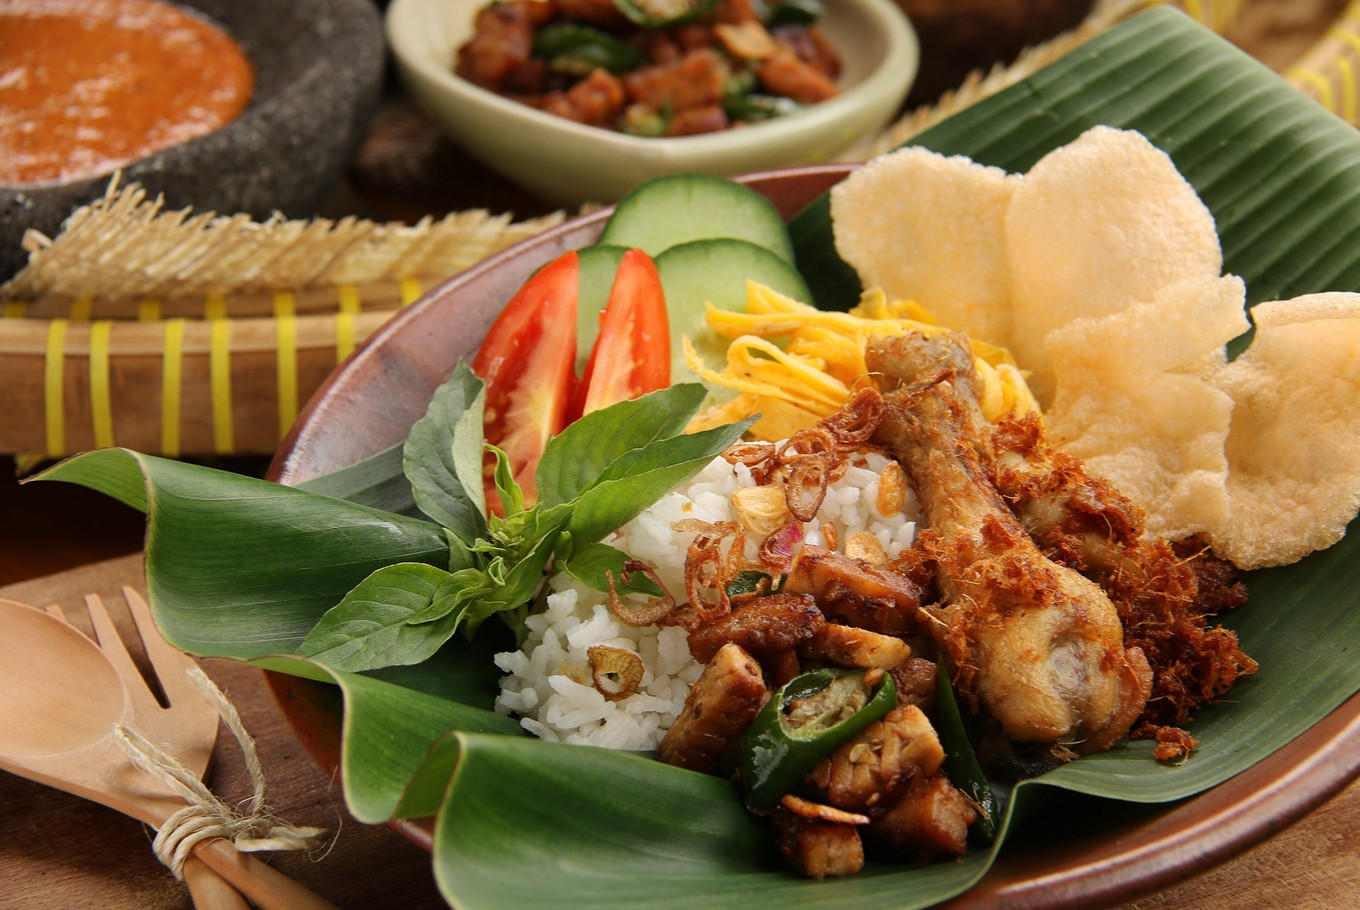 Where to go for authentic Betawi cuisine